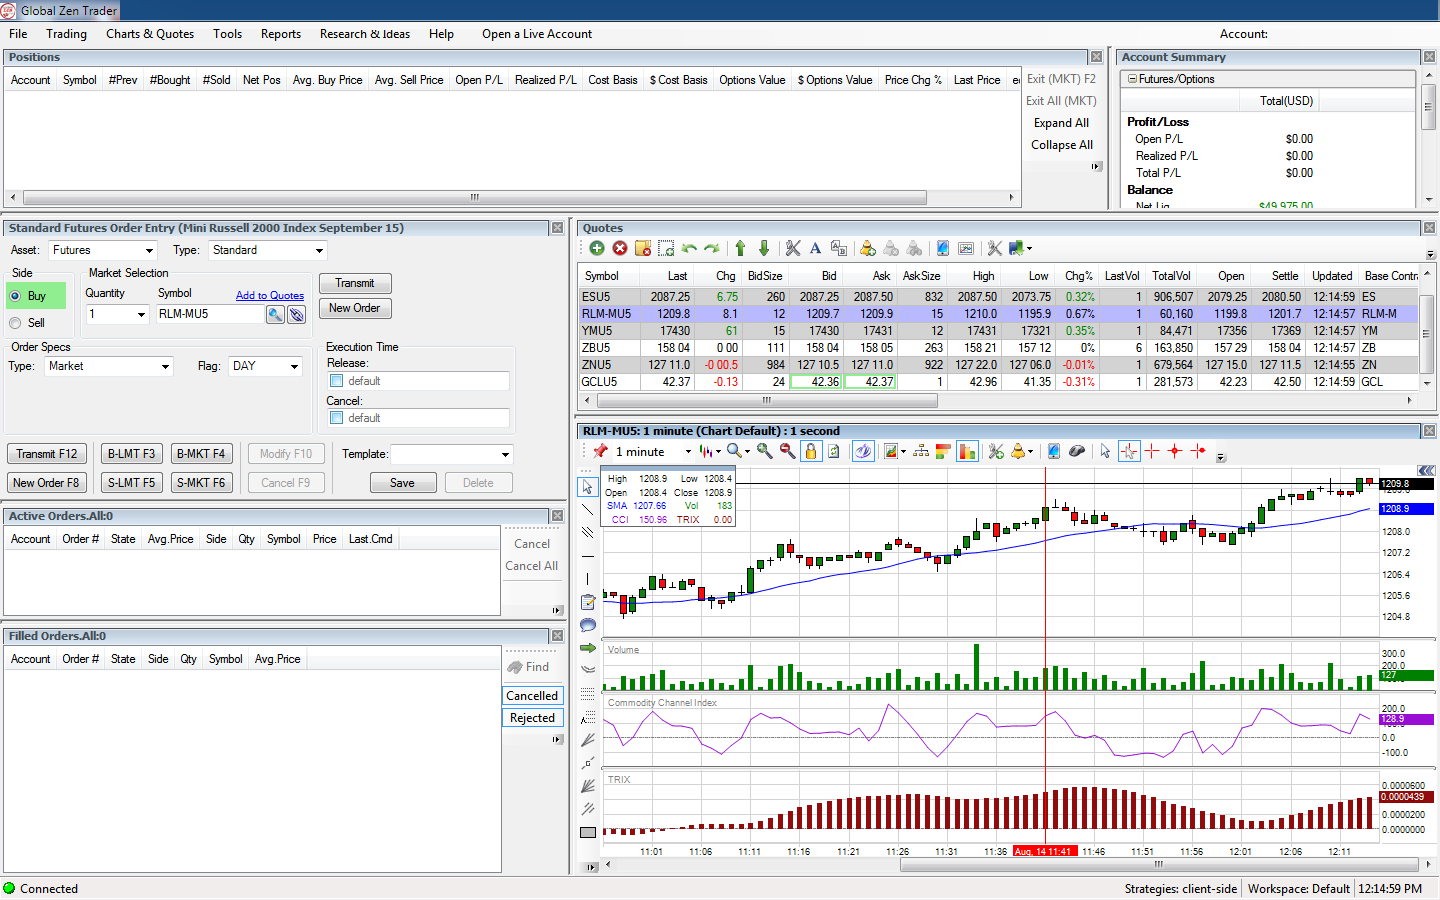 Global futures trading with charting